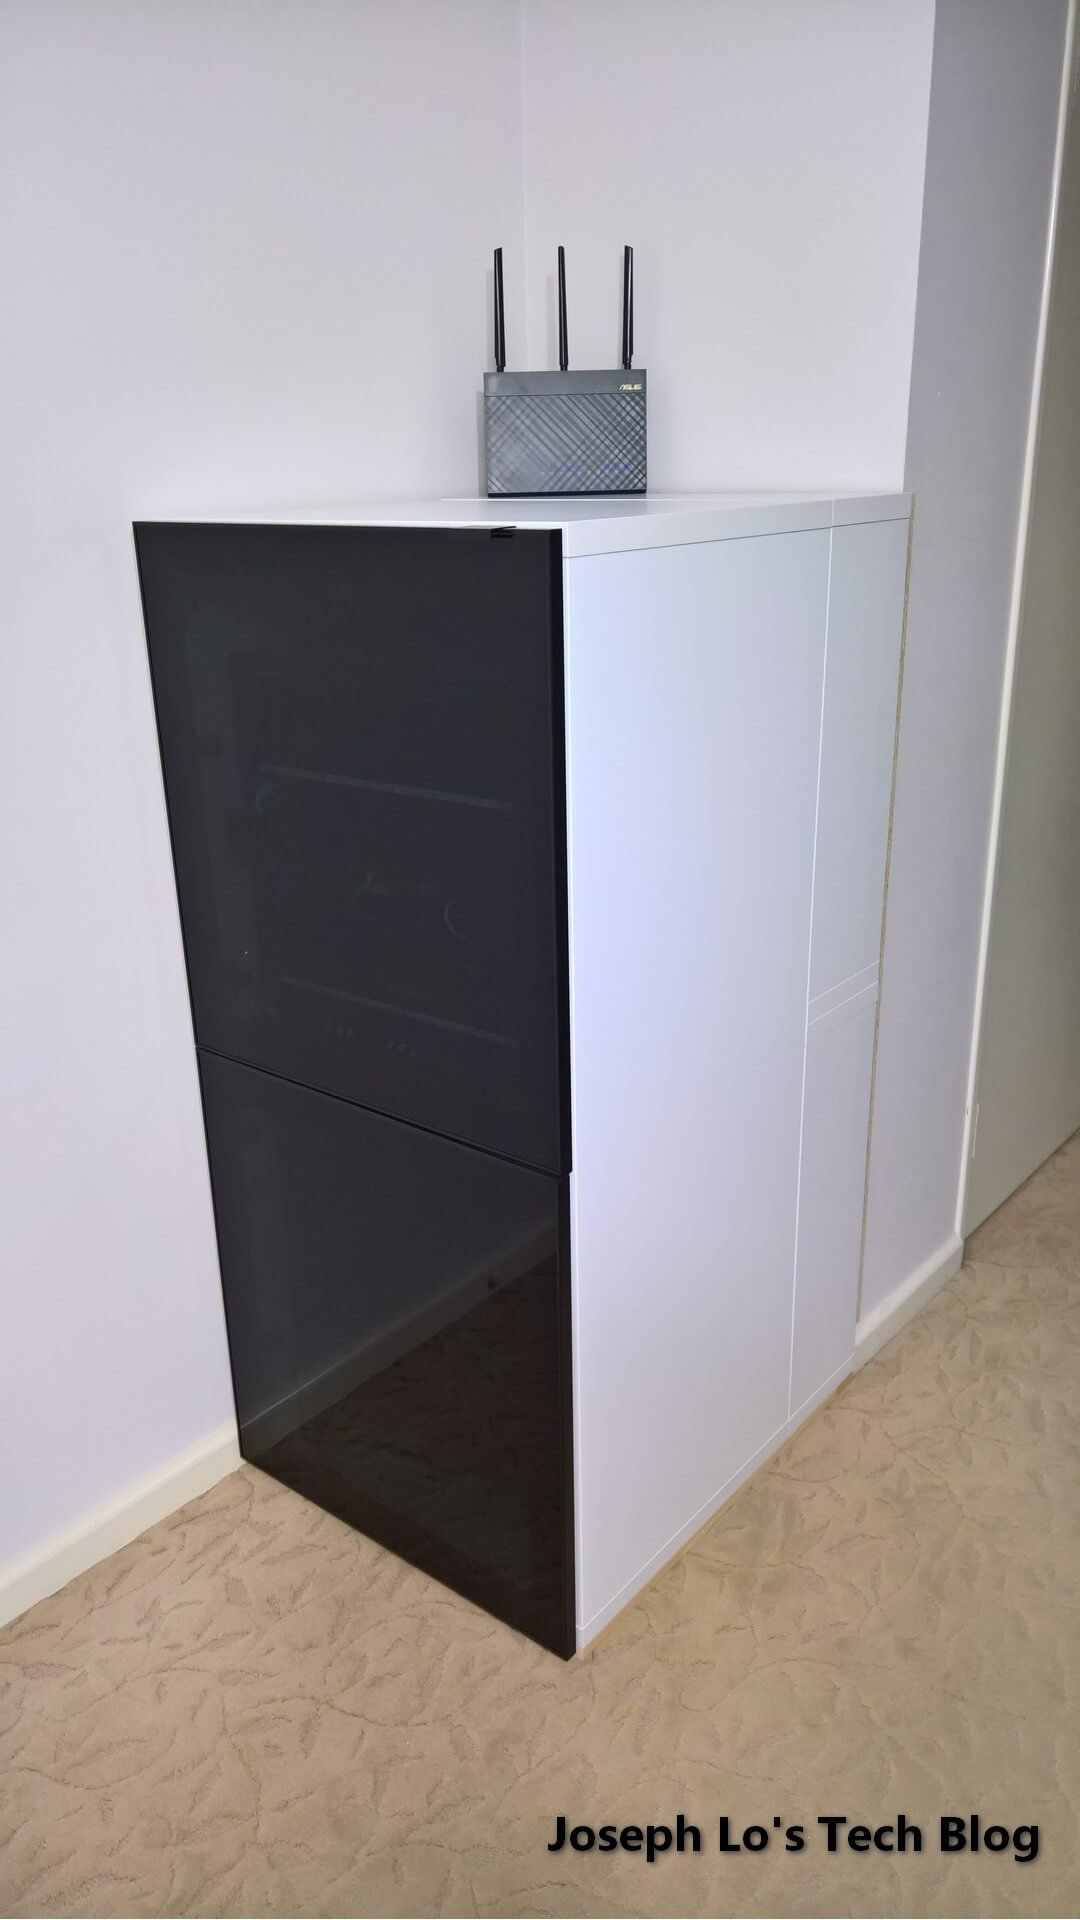 Diy Server Cabinet Using Ikea Parts Ikea Hackers